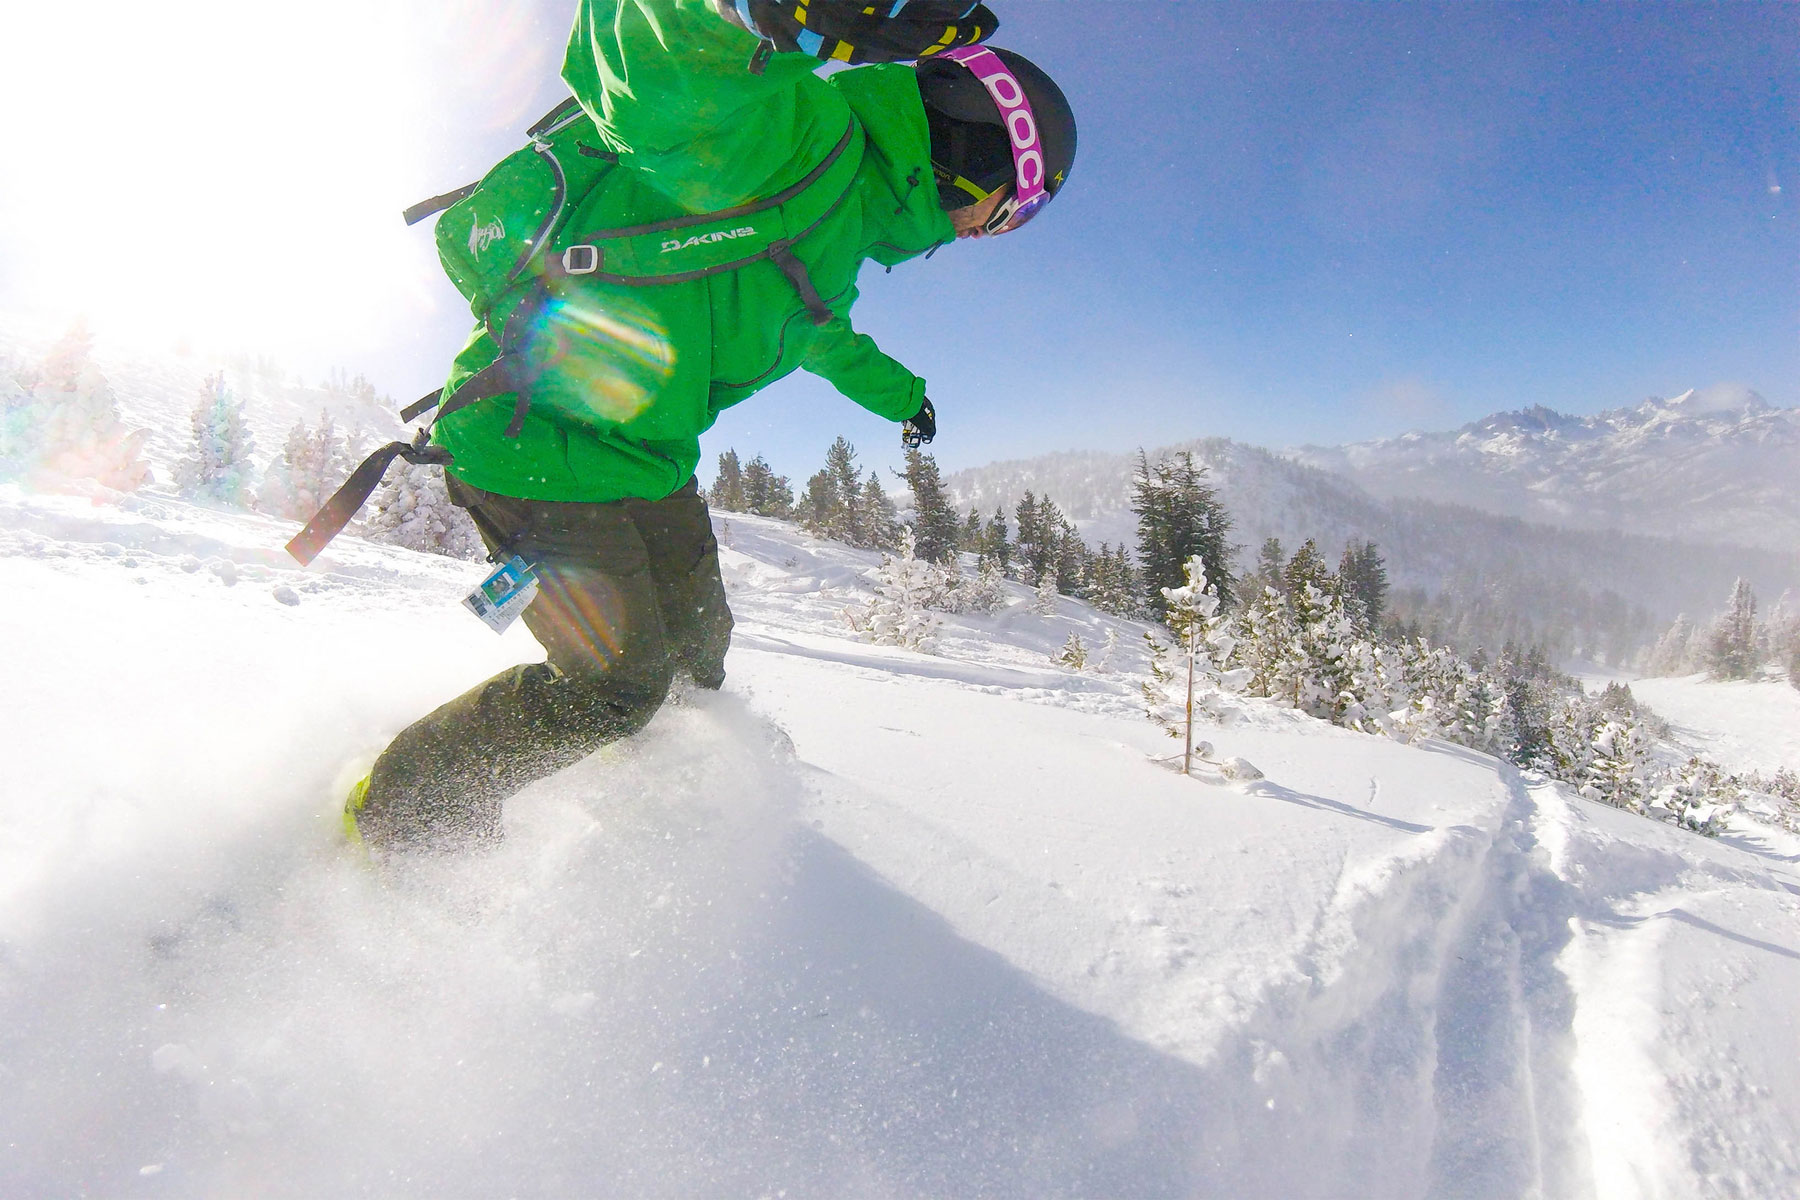 Mammoth Snow Report says it is a powder day